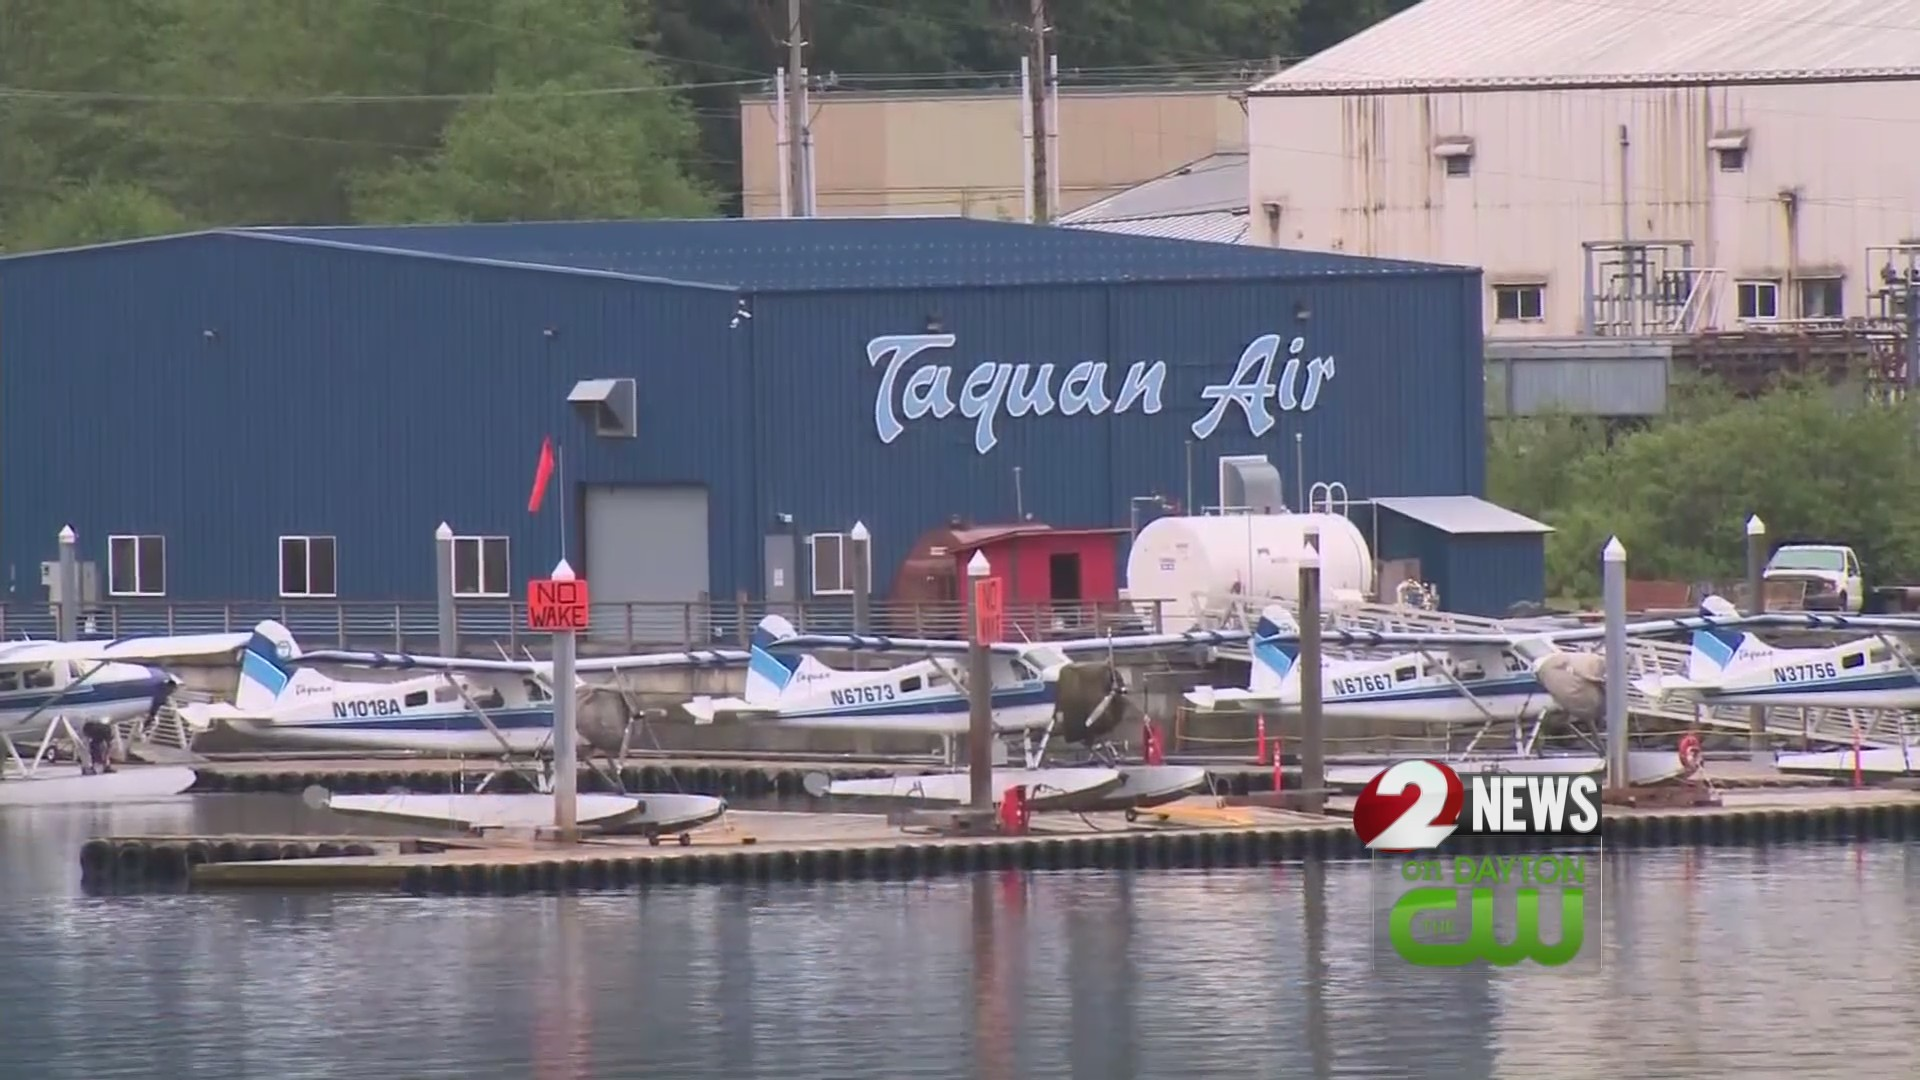 Focus turns to investigation in deadly Alaska mid-air crash